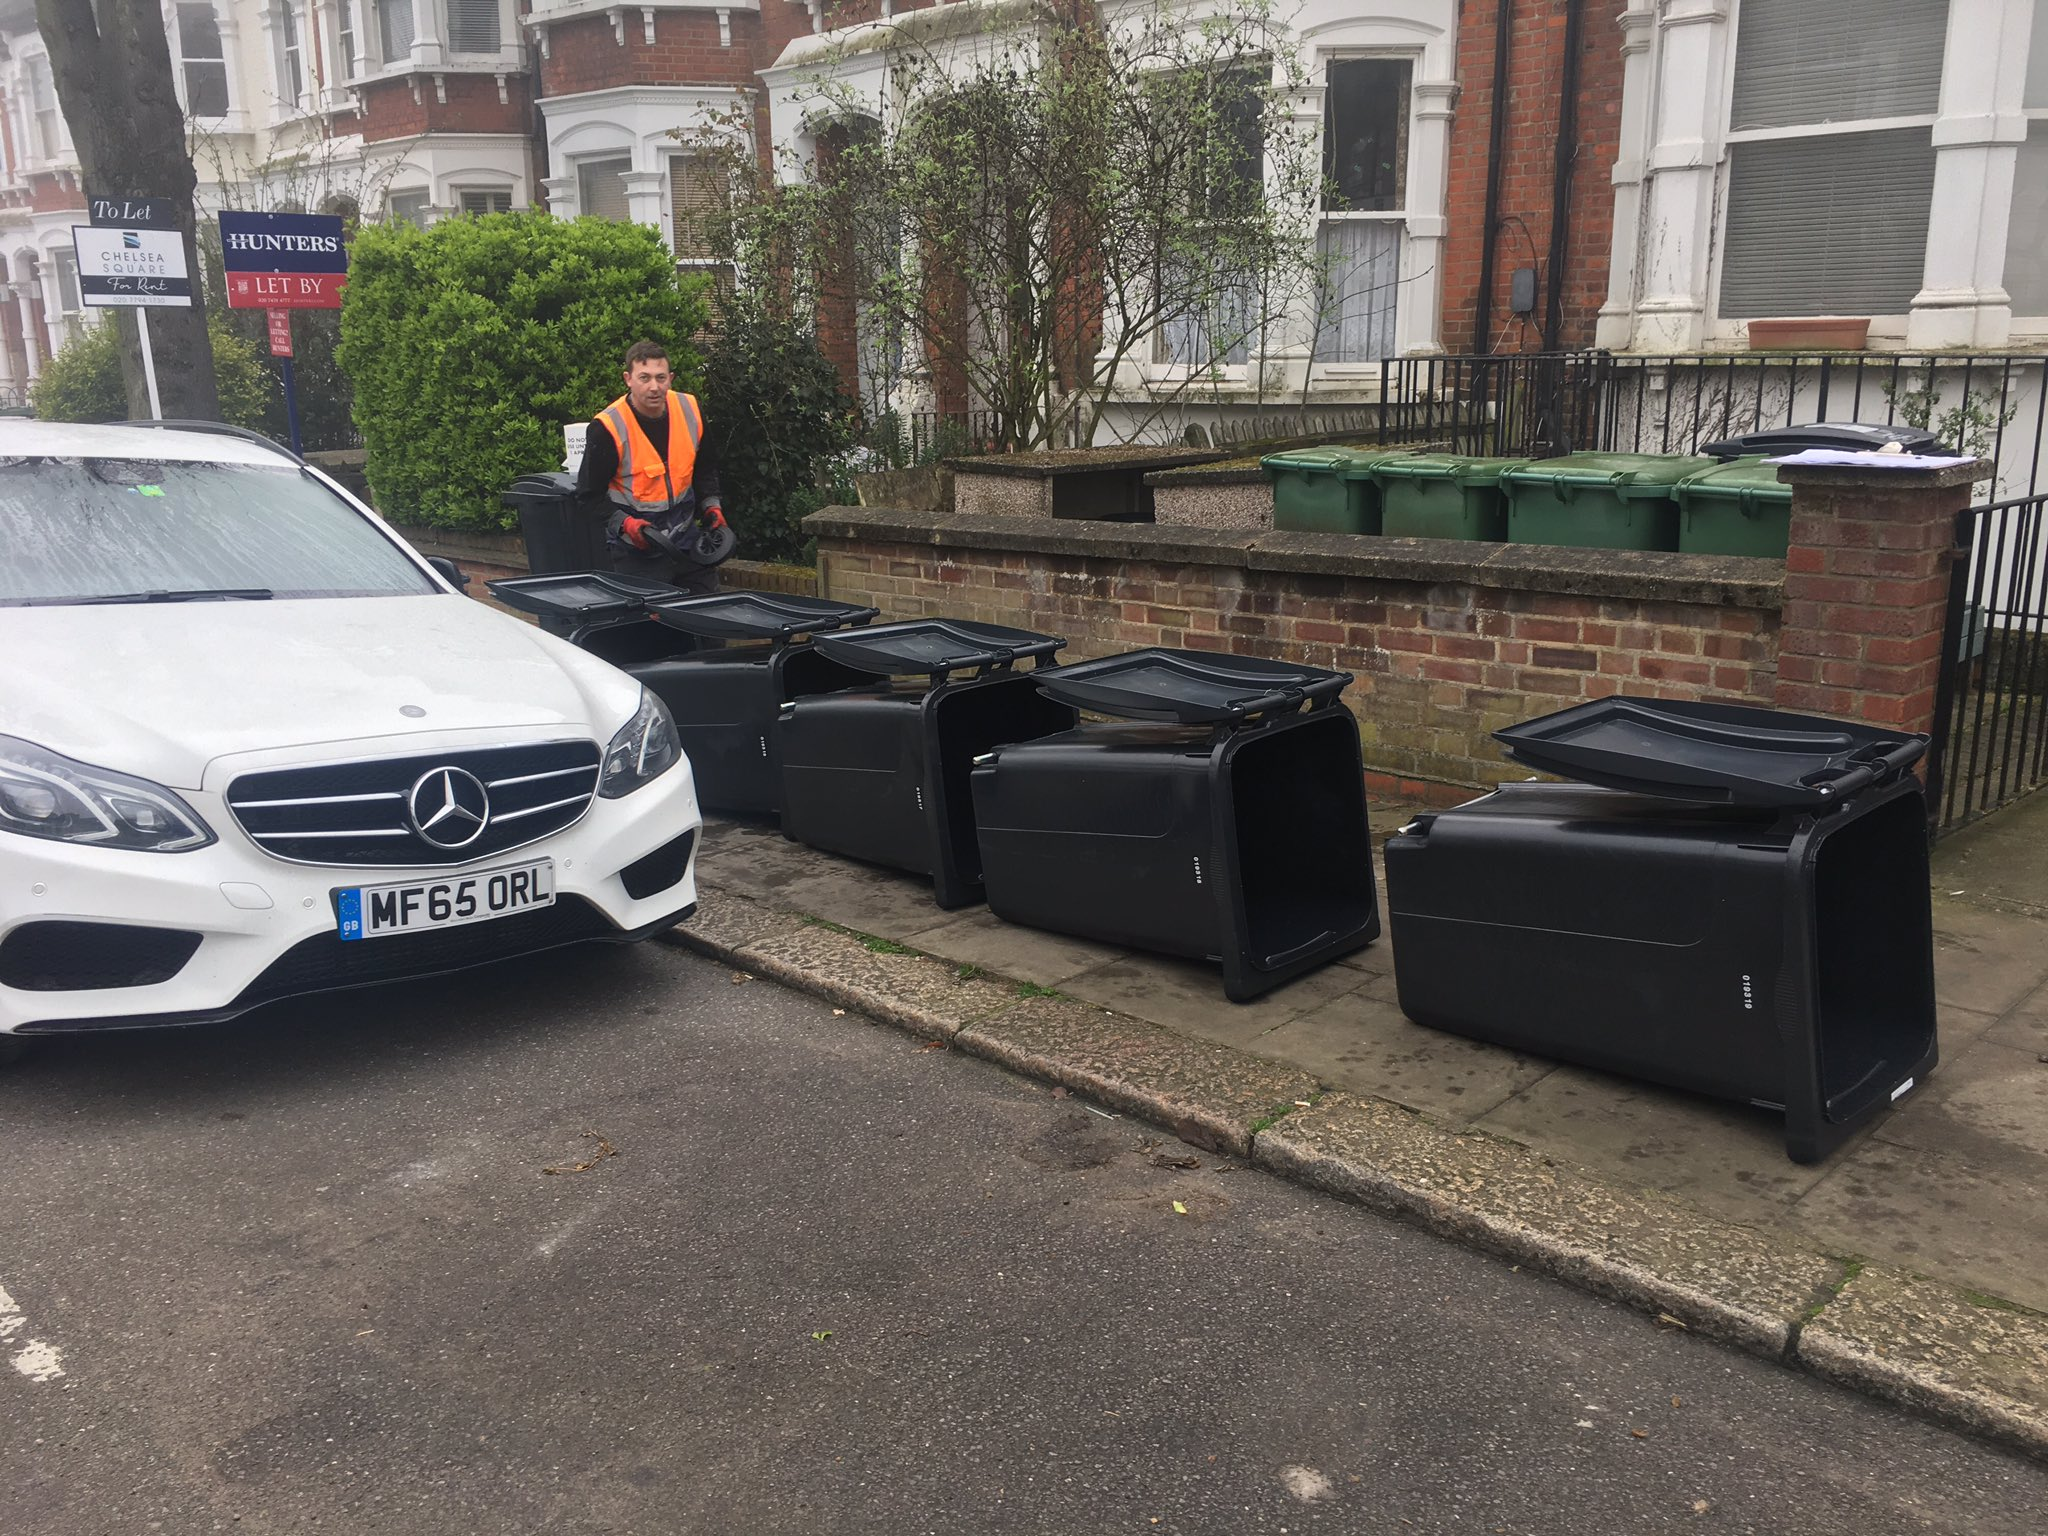 New wheelie bins continue their relentless march across West Hampstead! How will we fit them all in? @WHampstead https://t.co/i0pAfhwGpw